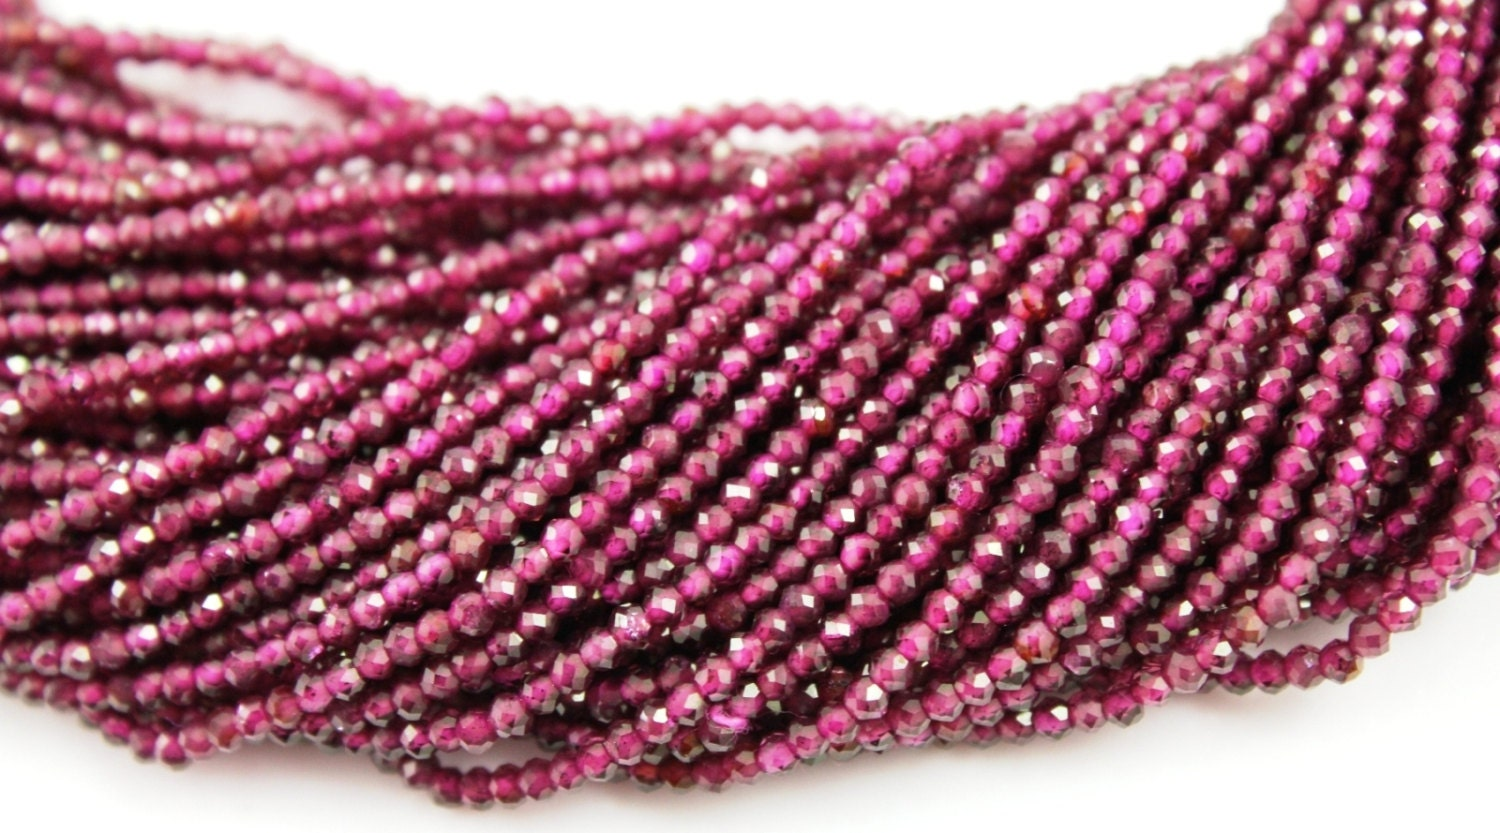 natural garnet micro faceted rondelle beads aaa quality gemstones appx 2mm 1 strand gar 2mm. Black Bedroom Furniture Sets. Home Design Ideas